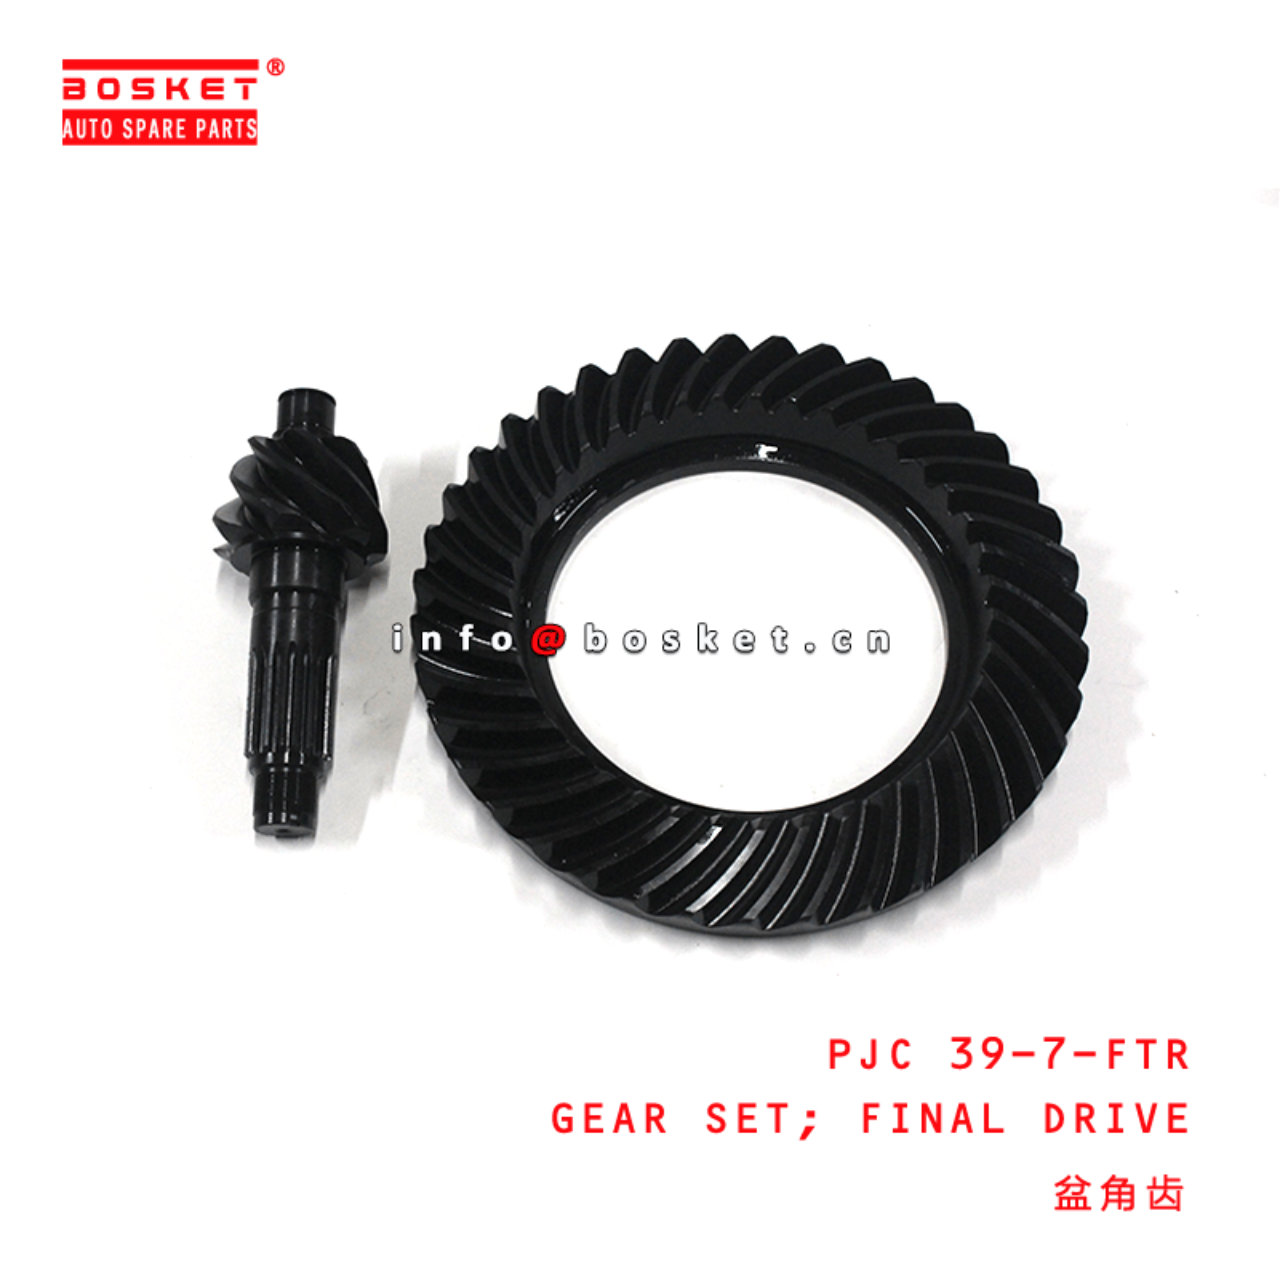 PJC 39-7-FTR Suitable for ISUZU